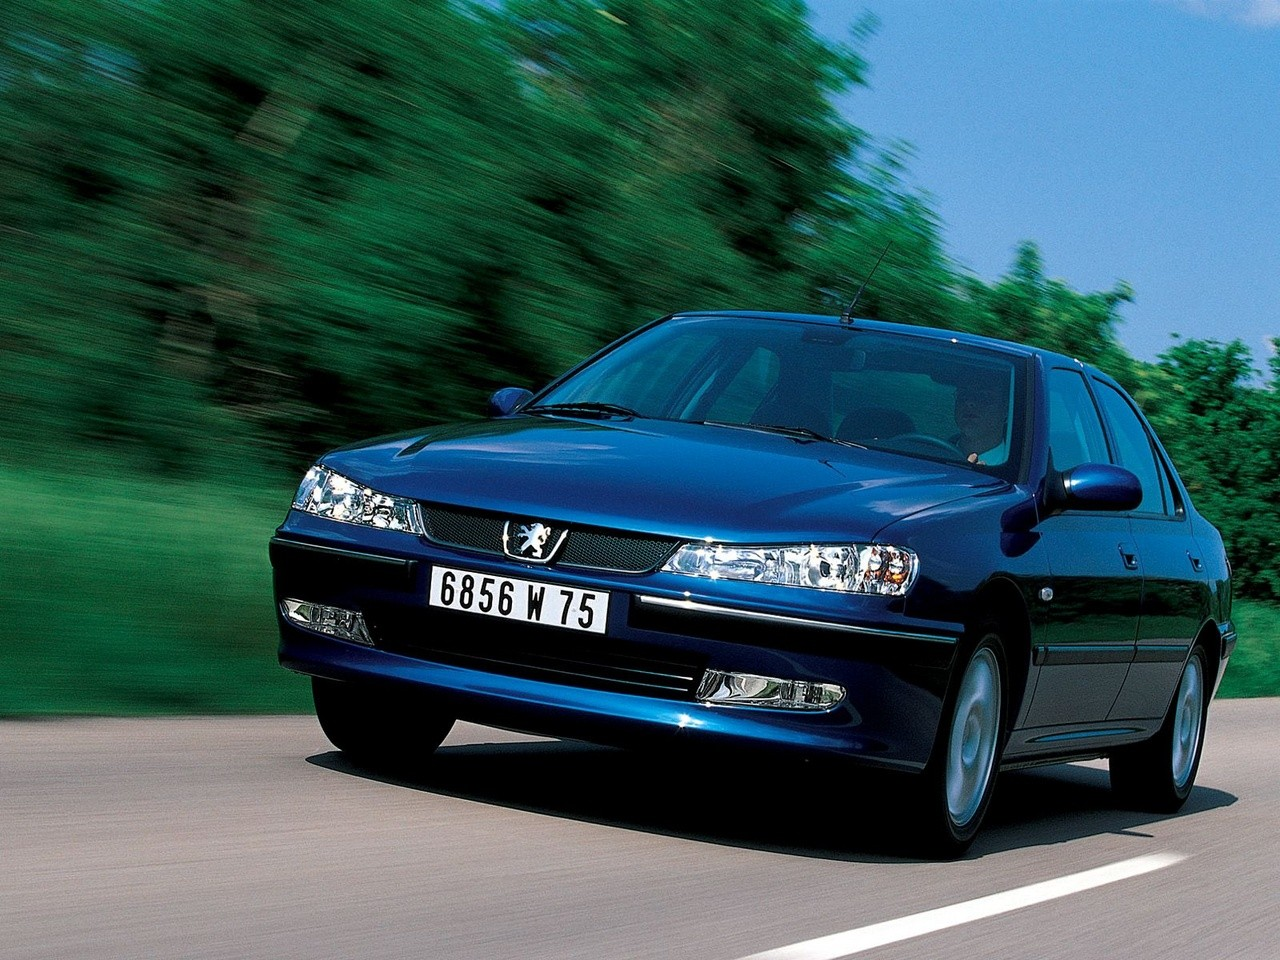 peugeot 406 specs 1999 2000 2001 2002 2003 2004 autoevolution. Black Bedroom Furniture Sets. Home Design Ideas